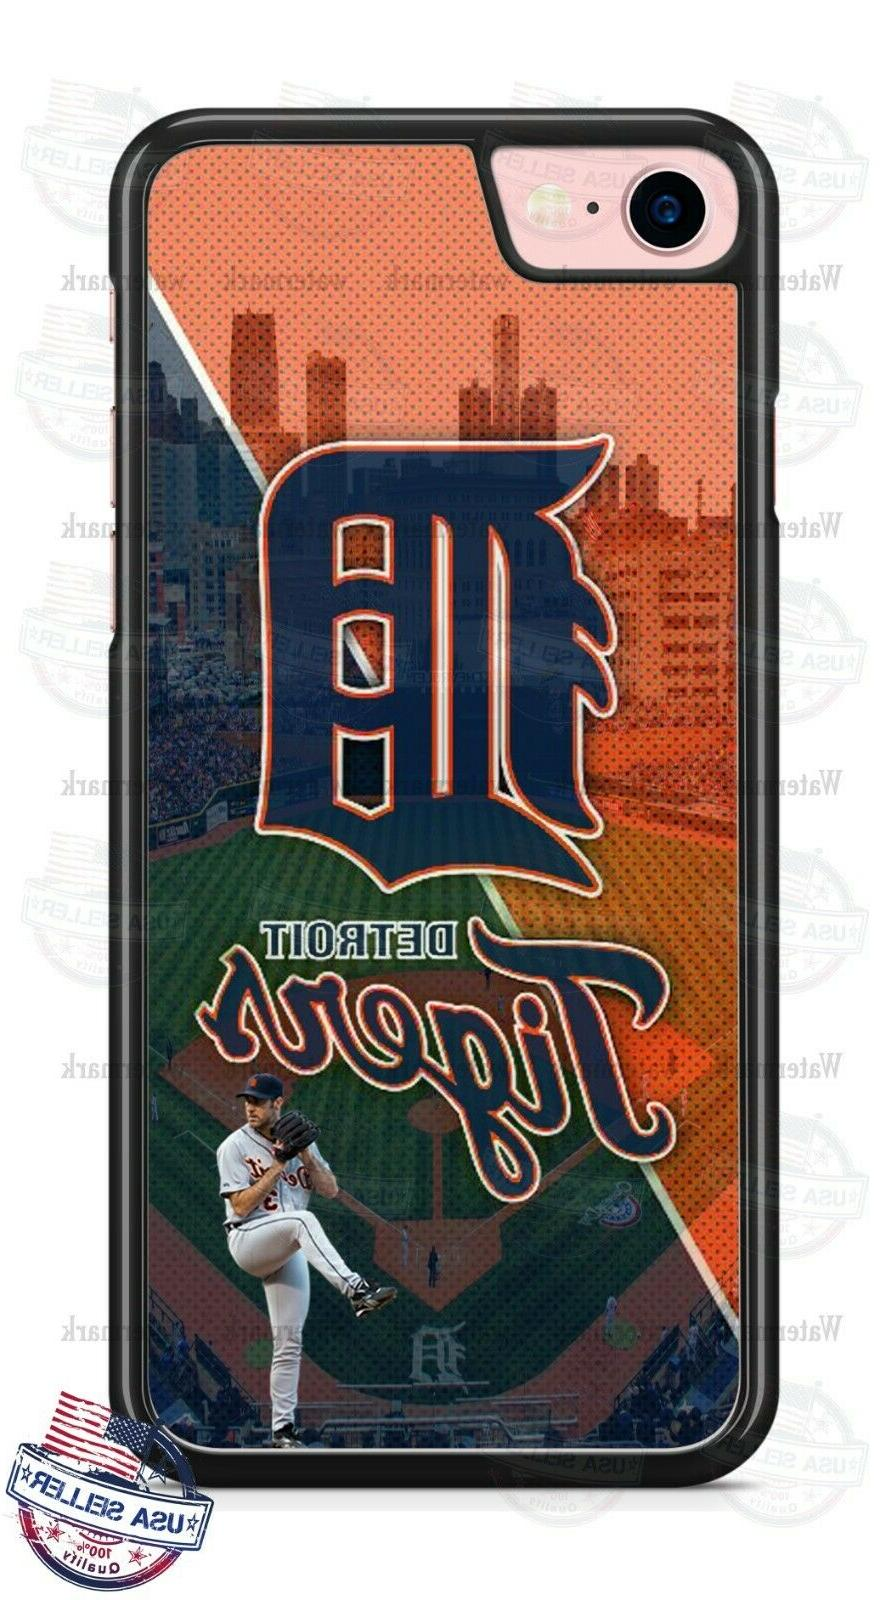 detroit tigers baseball phone case cover fits